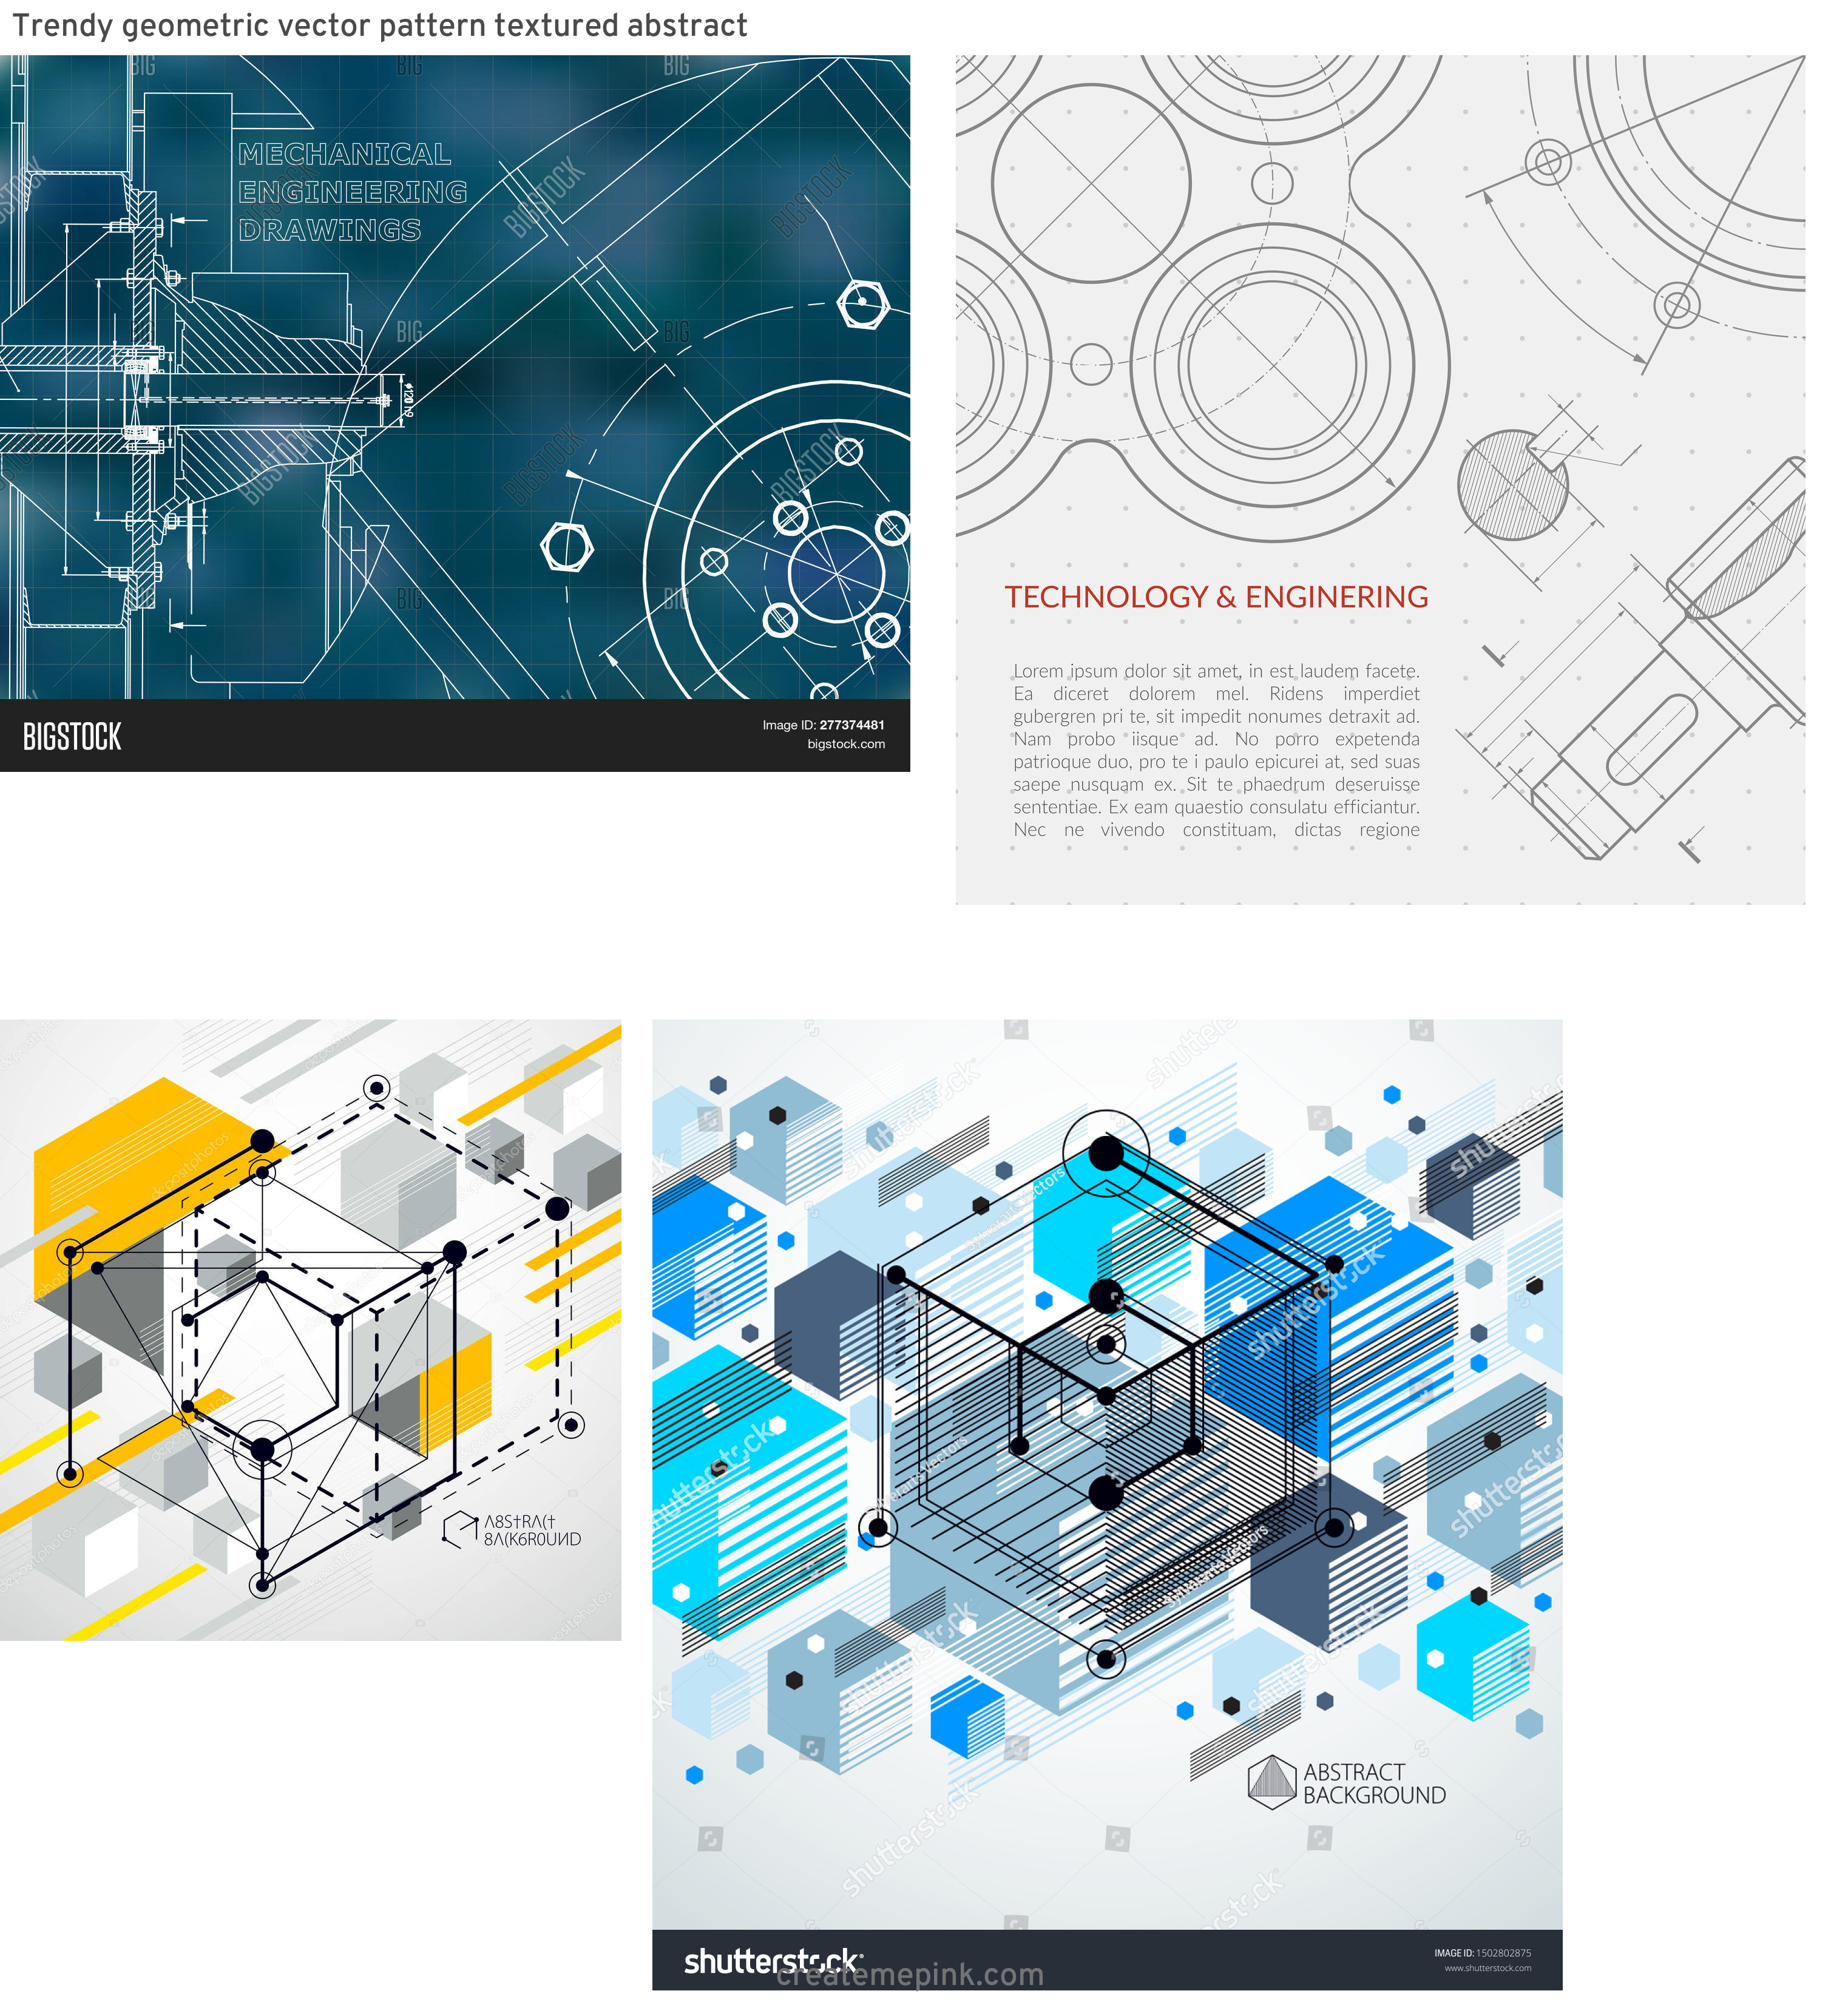 Engineering Vector Pattern: Trendy Geometric Vector Pattern Textured Abstract